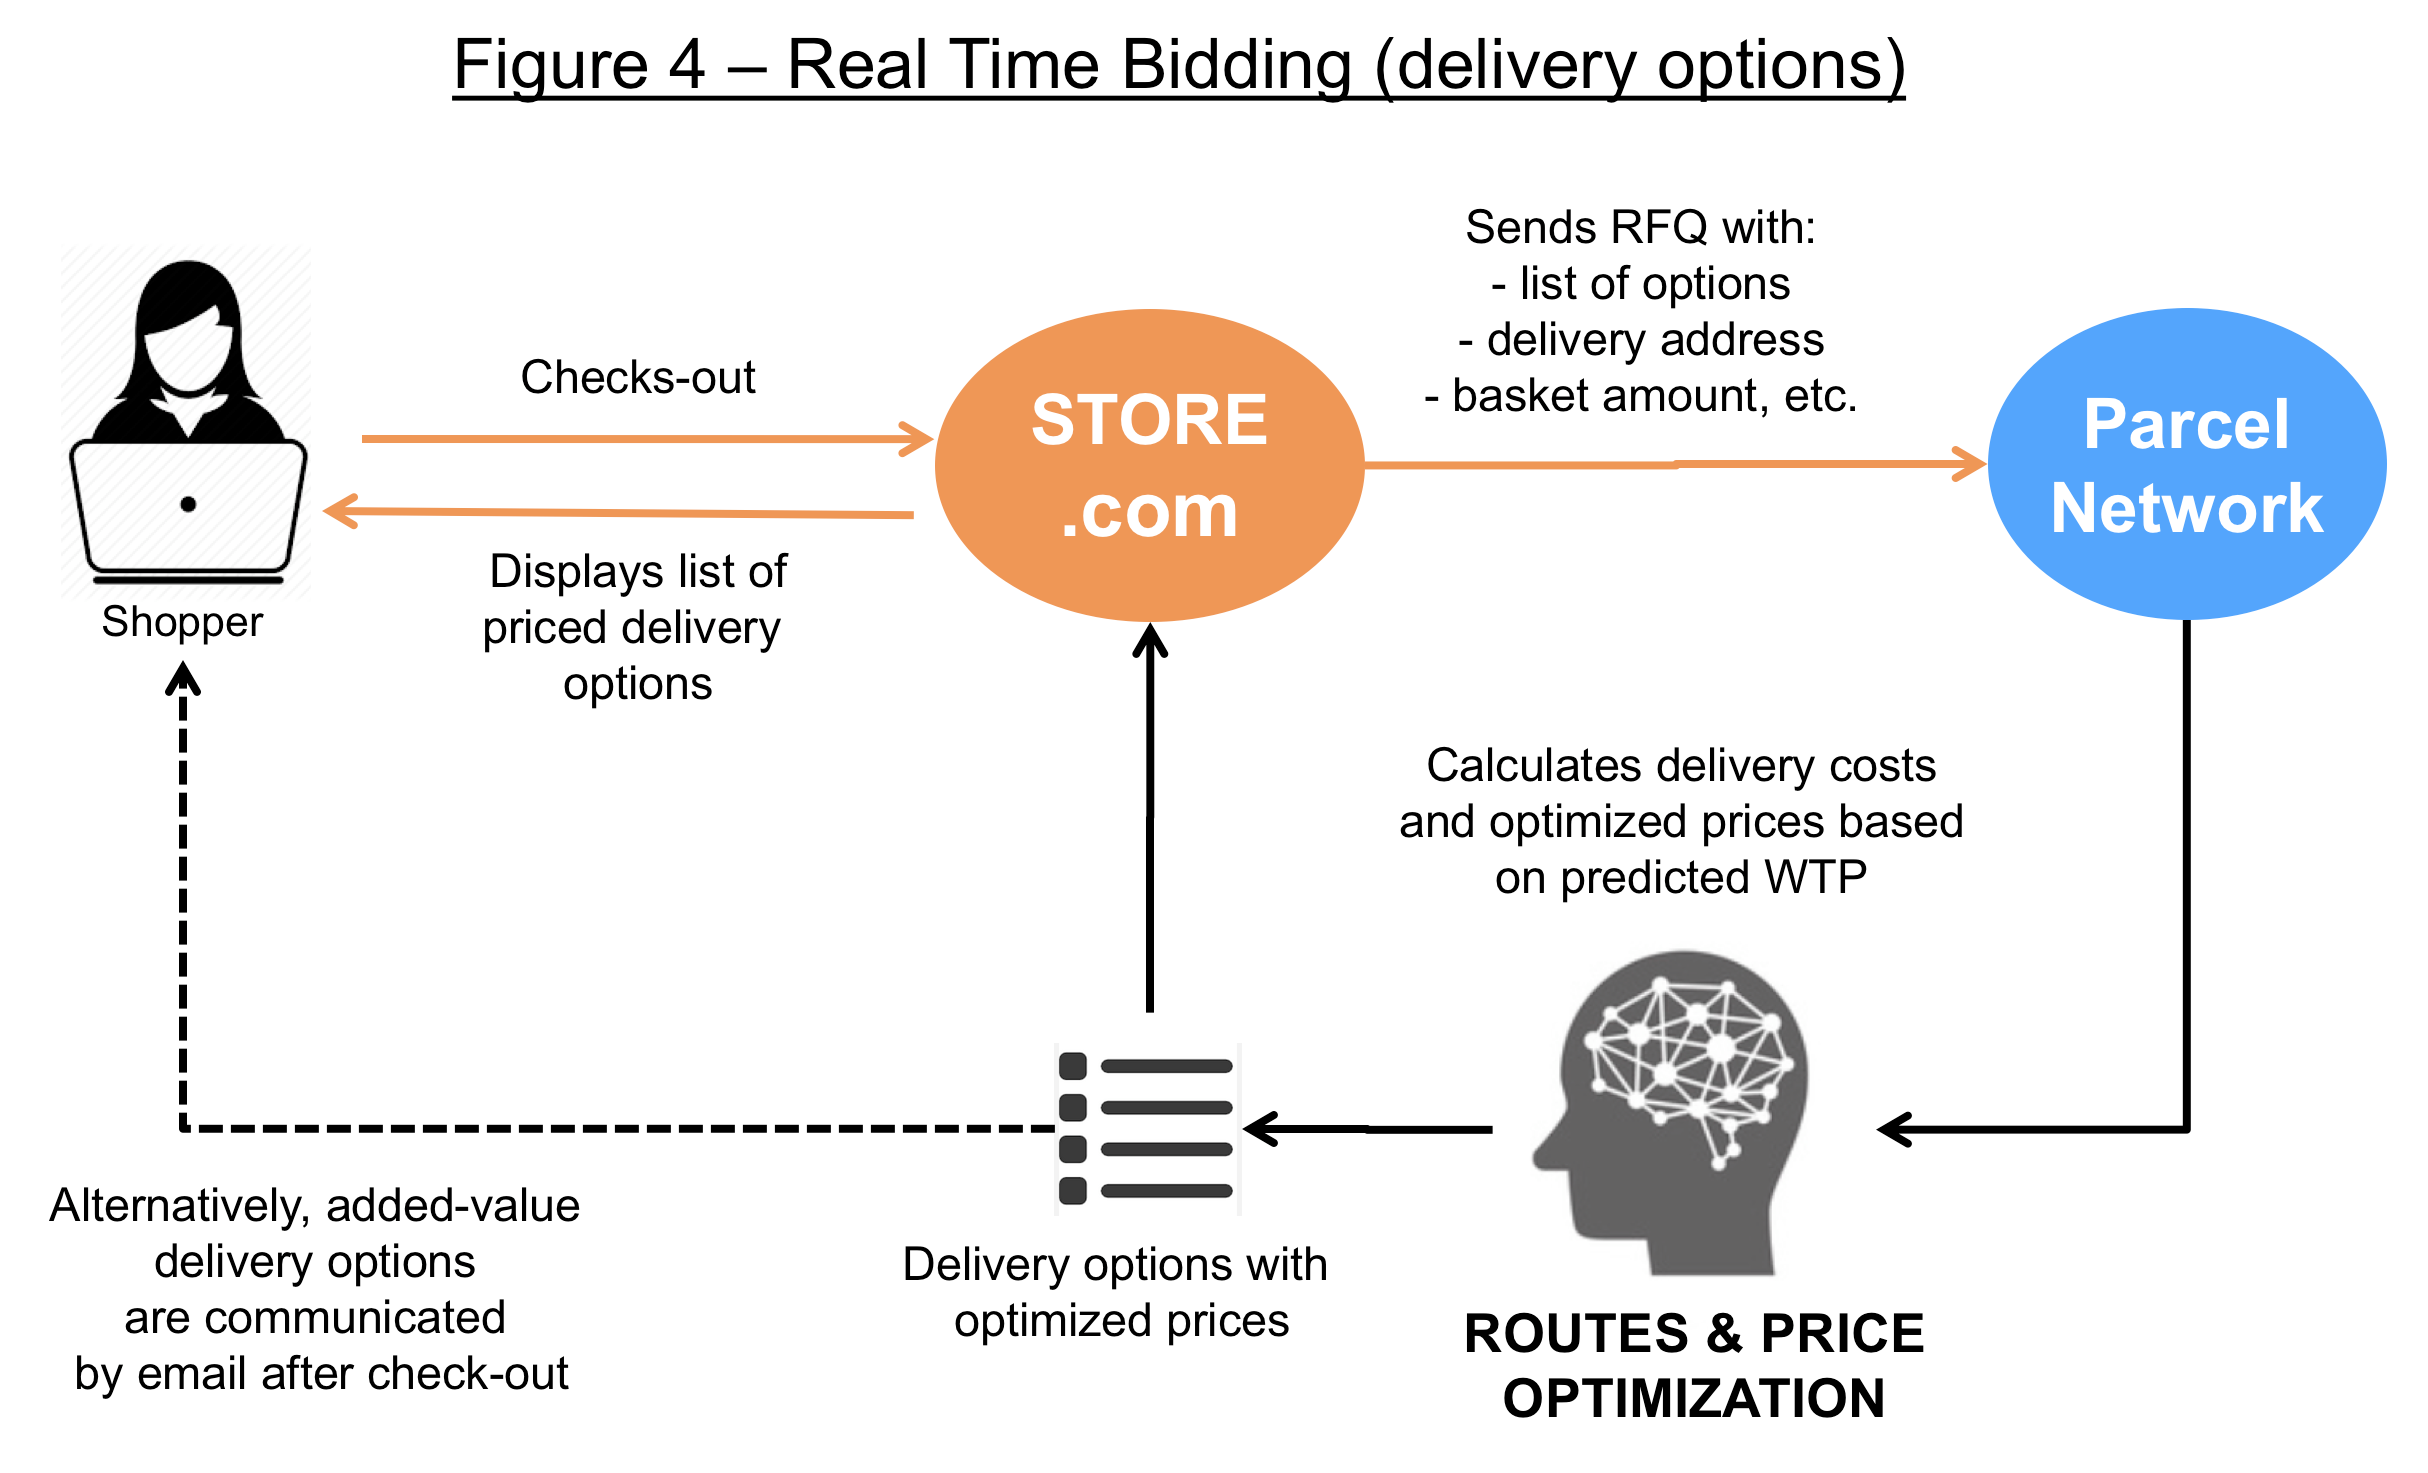 Open Pricer – Why should Parcel Networks prepare for Dynamic Pricing?